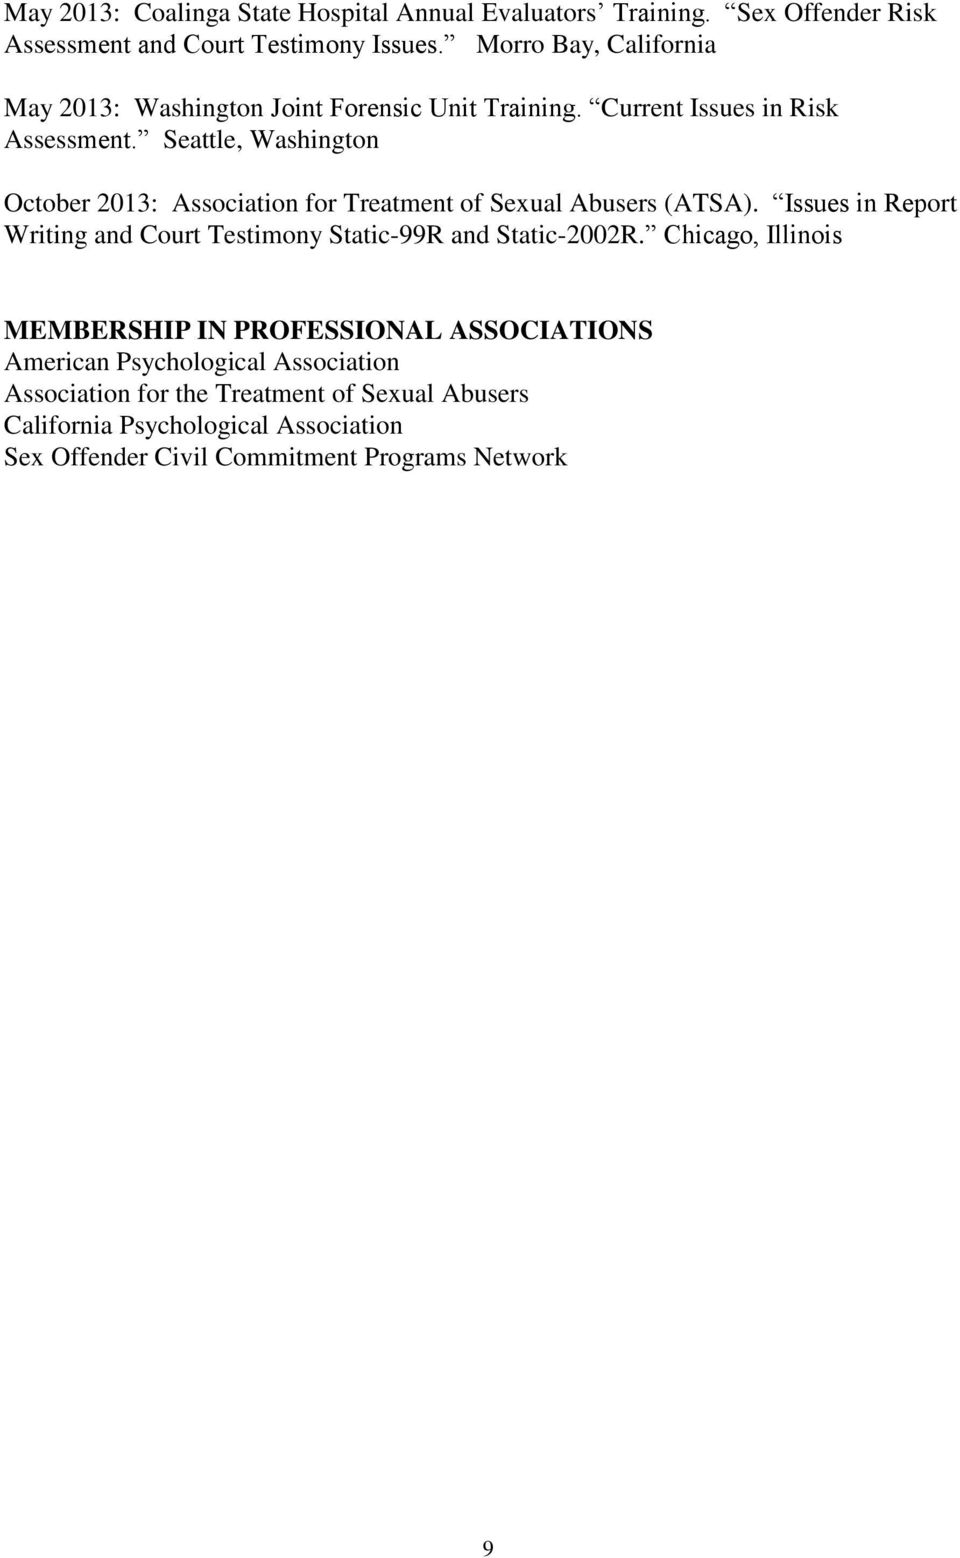 Seattle, Washington October 2013: Association for Treatment of Sexual Abusers (ATSA).